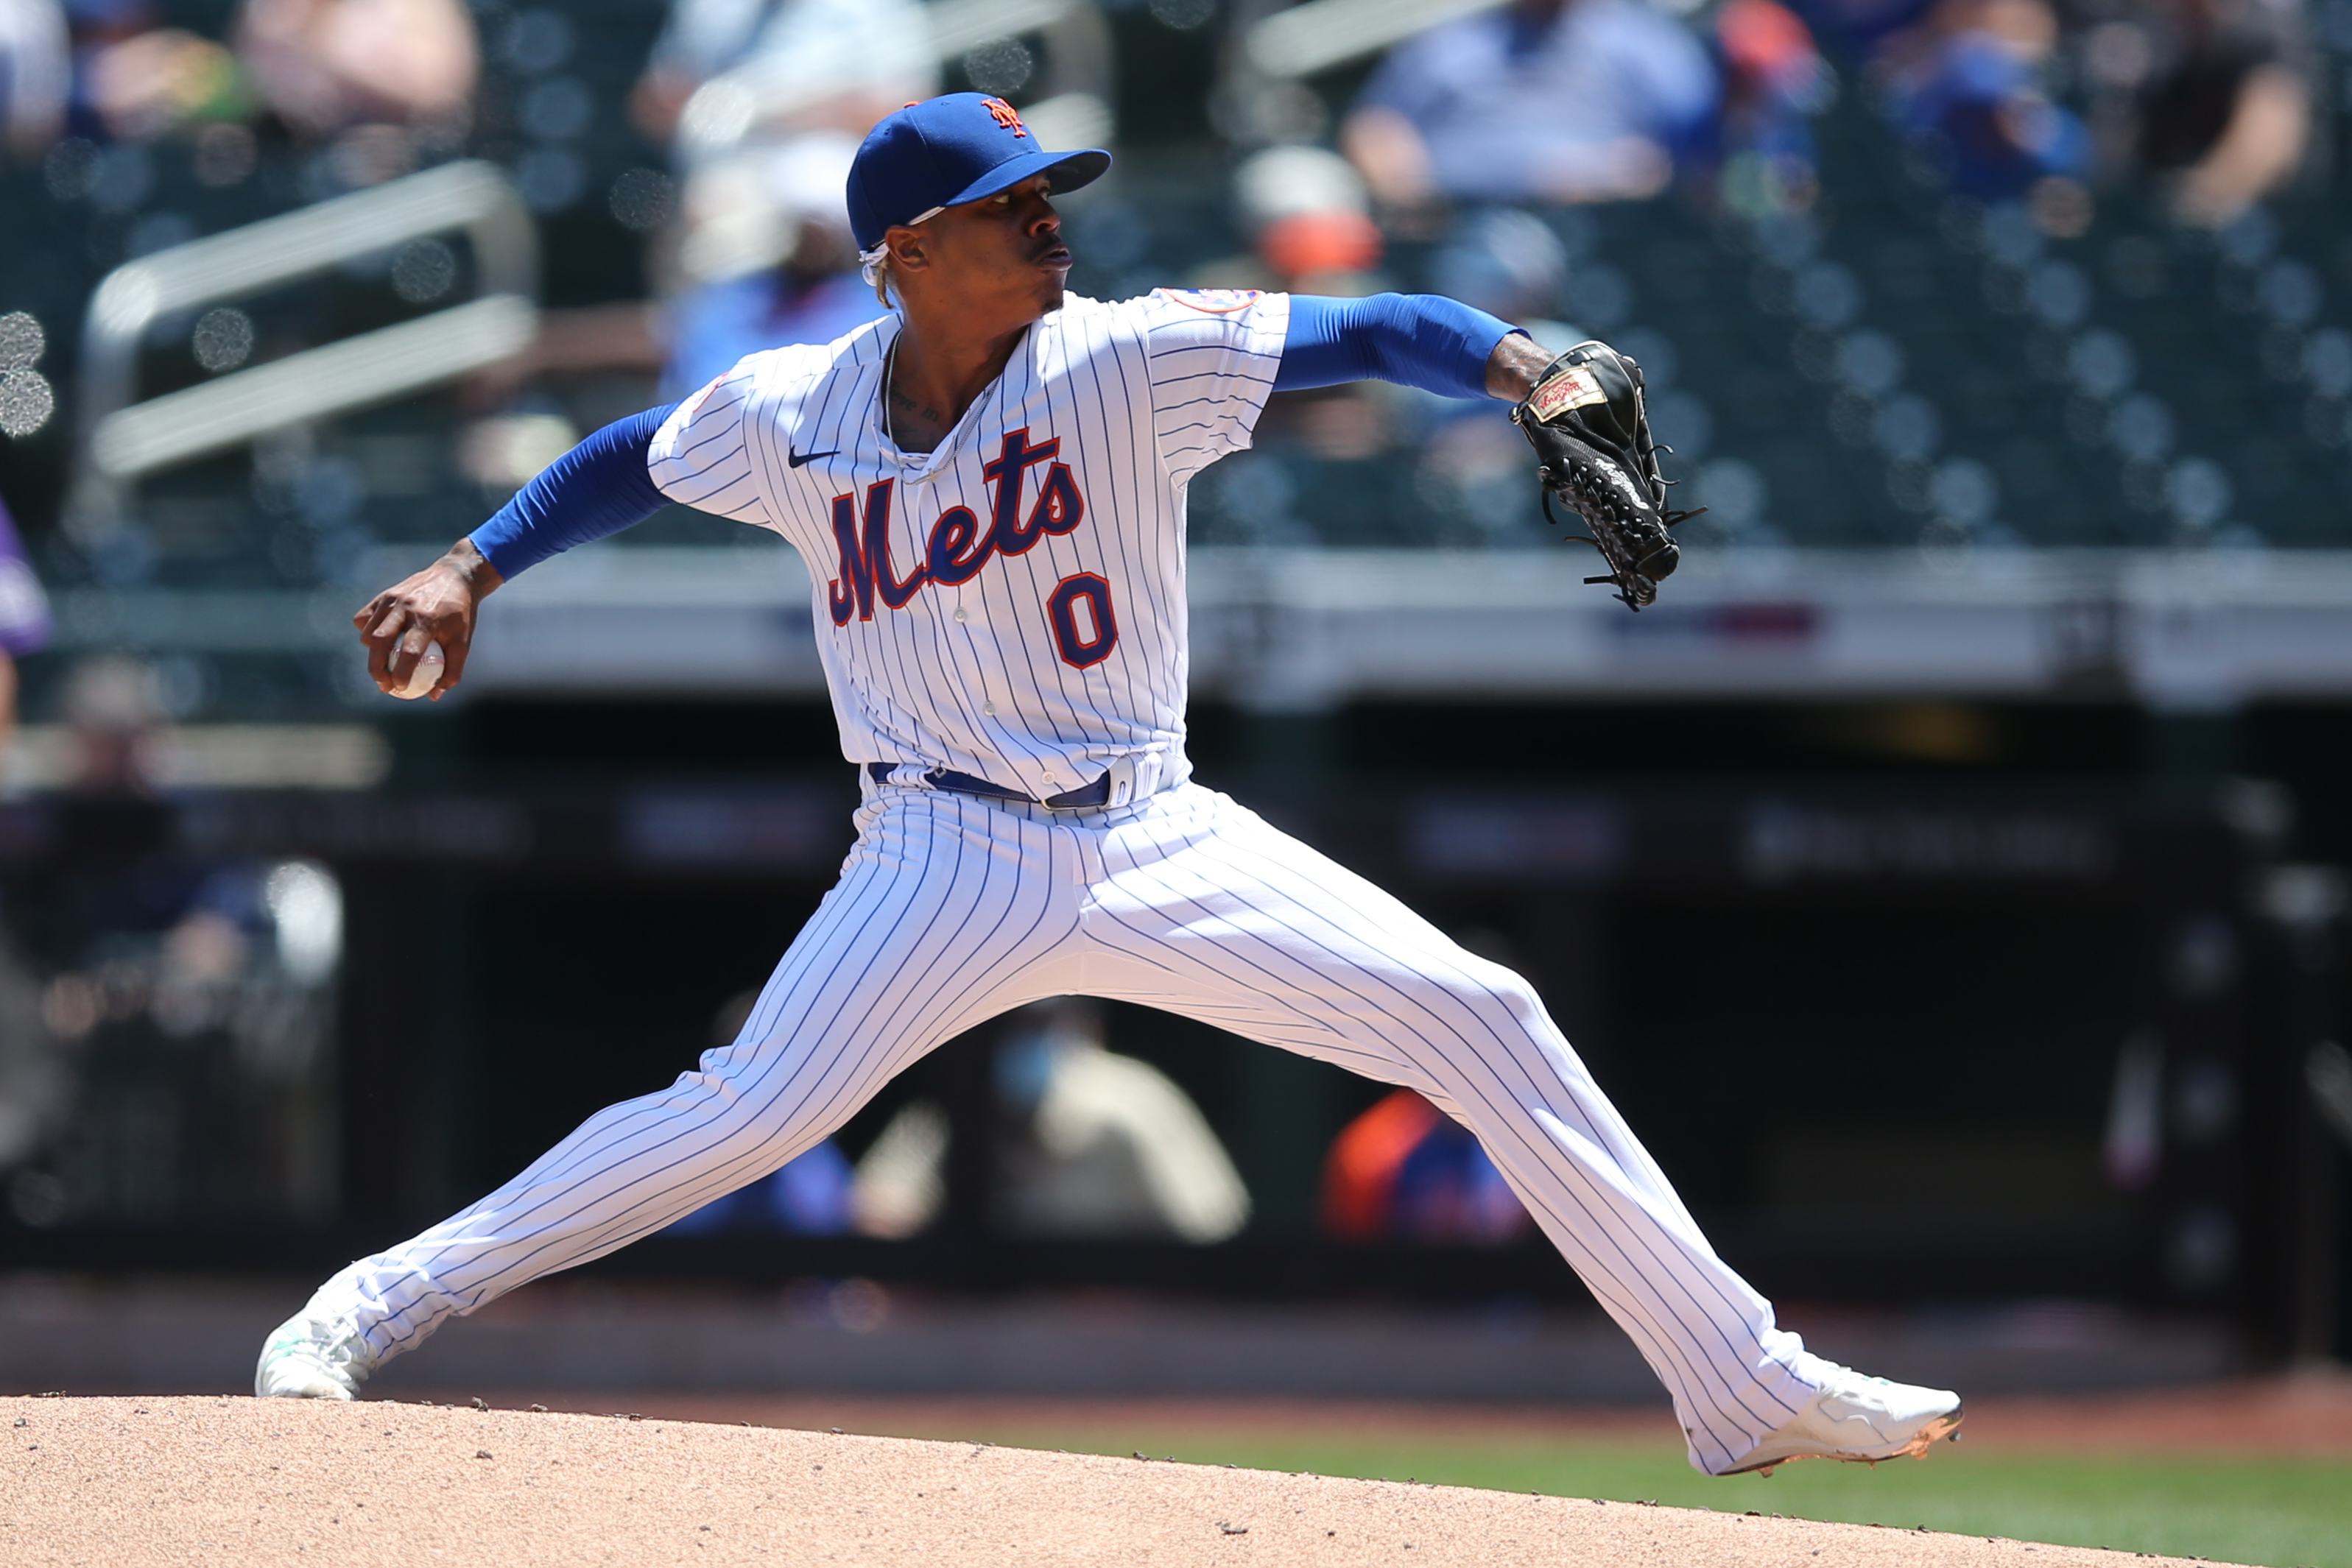 New York Mets starting pitcher Marcus Stroman (0) pitches against the Colorado Rockies during the second inning at Citi Field